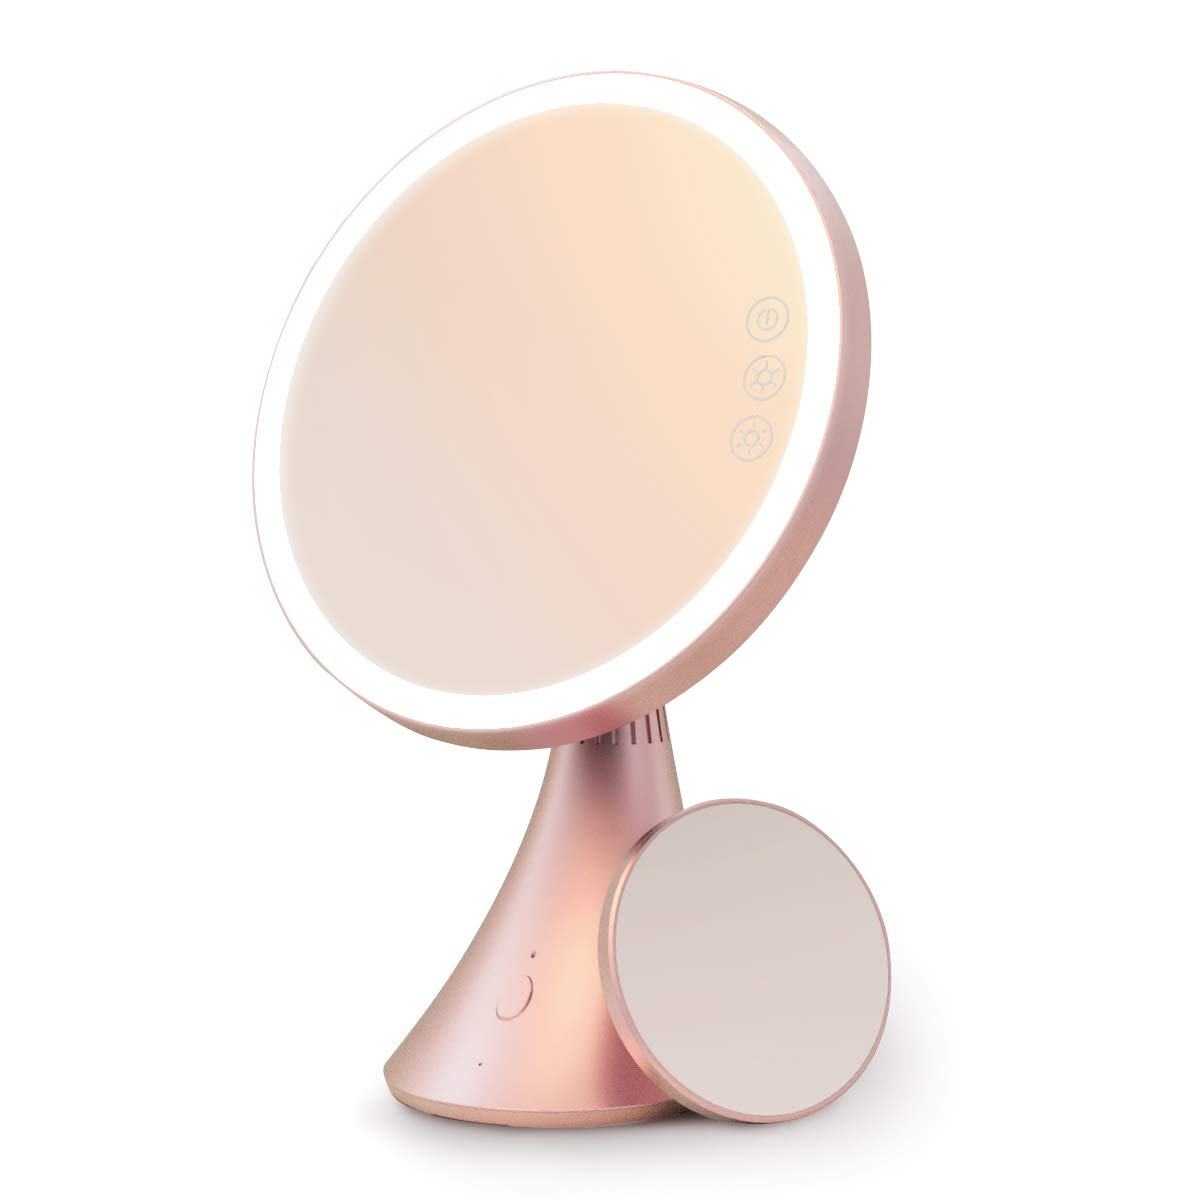 Babyltrl Lighted Makeup Mirror, Rechargeable 9 Inch Led Vanity Mirror with Bluetooth Speaker, 5X Magnification, Adjustable Color Temperature Brightness Tabletop Makeup Mirror